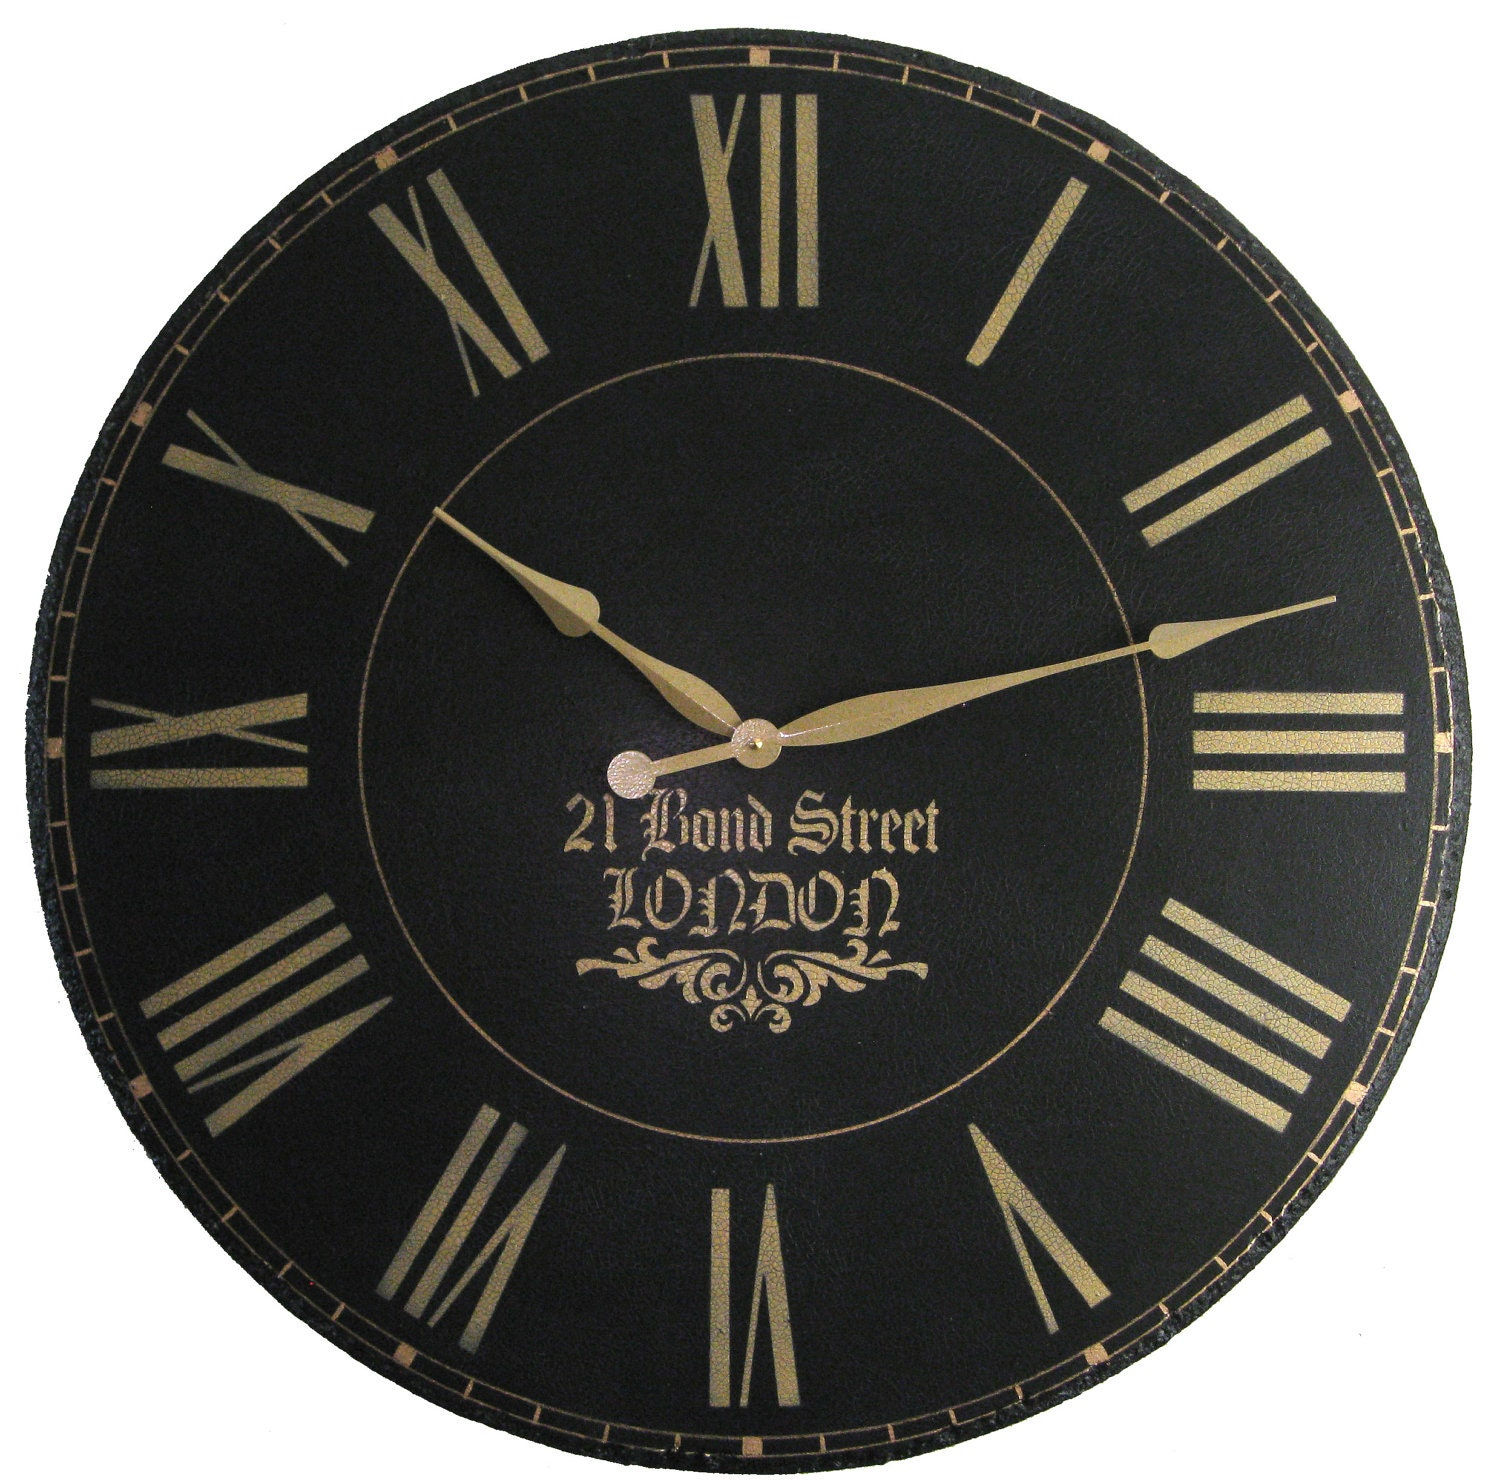 london town 36 inch large wall clock personalized by klocktime. Black Bedroom Furniture Sets. Home Design Ideas